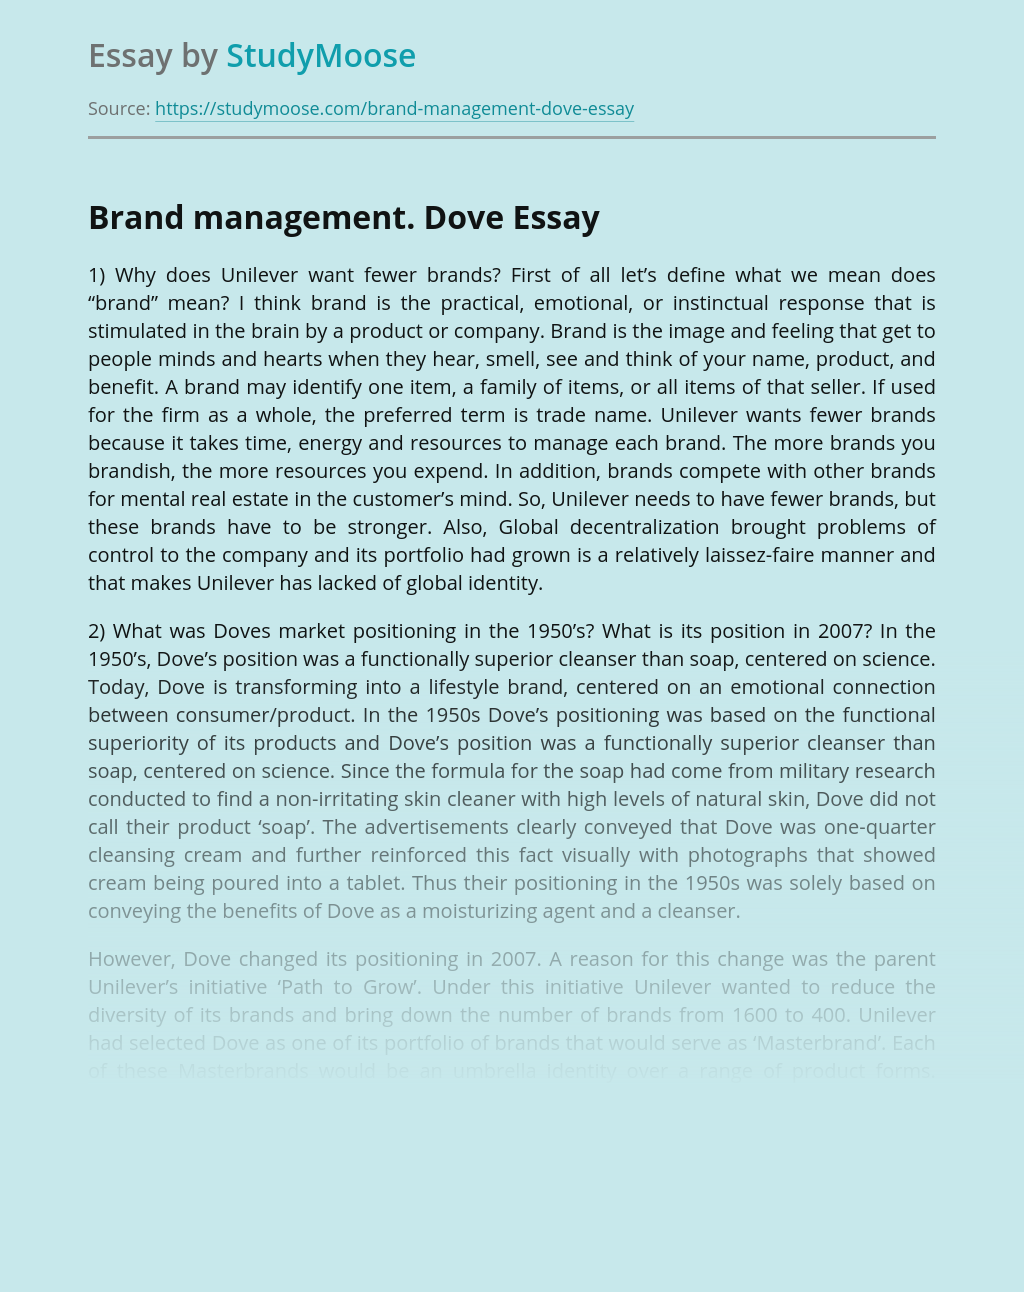 Brand management. Dove